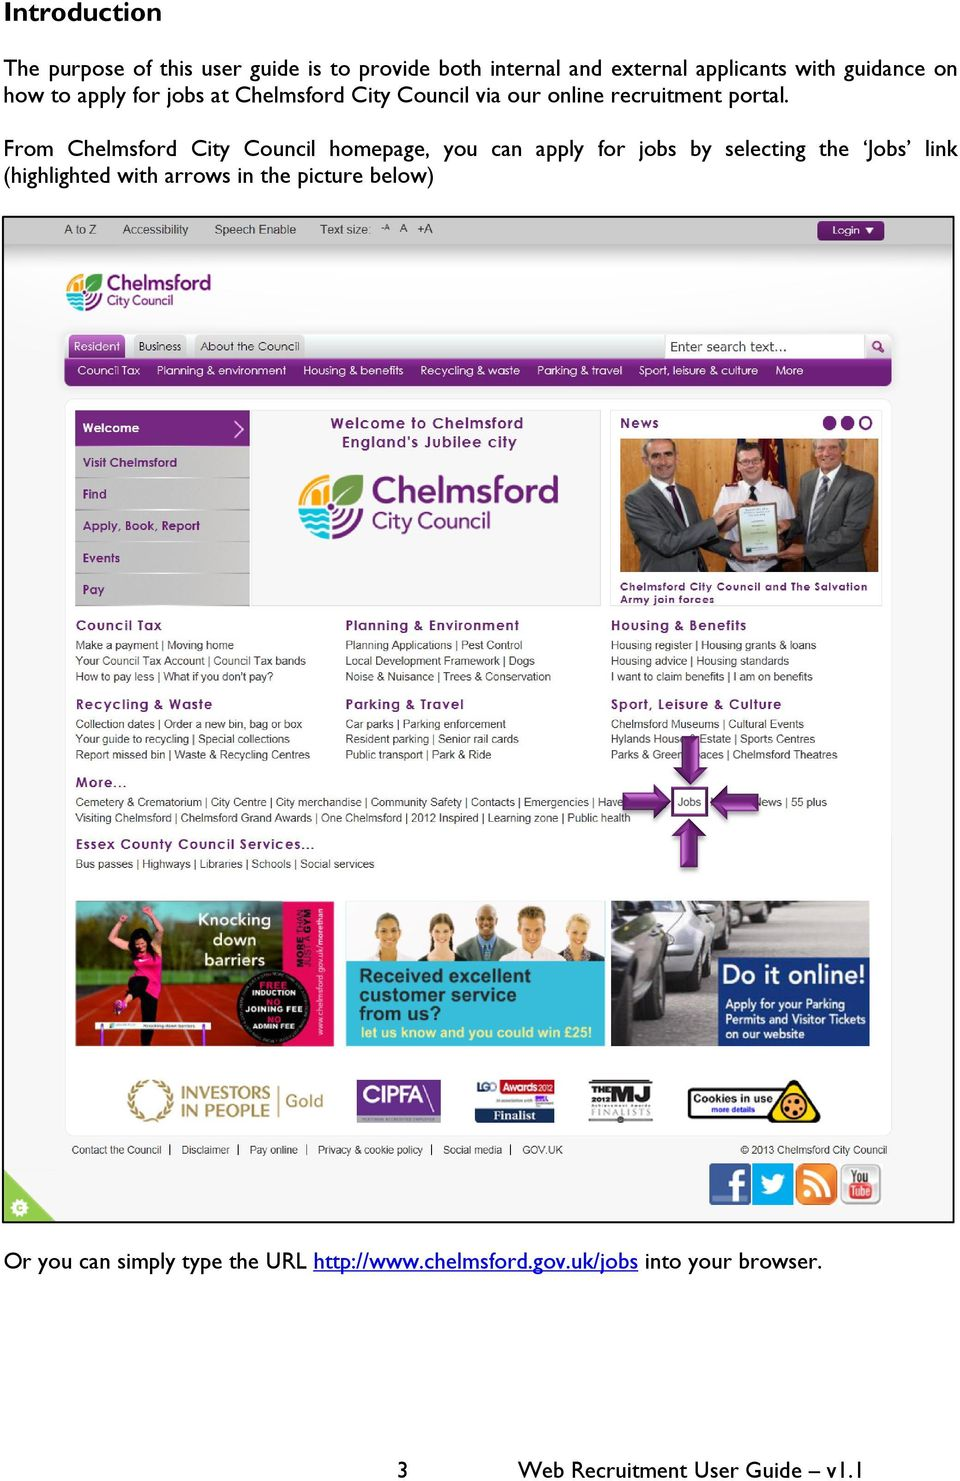 From Chelmsford City Council homepage, you can apply for jobs by selecting the Jobs link (highlighted with